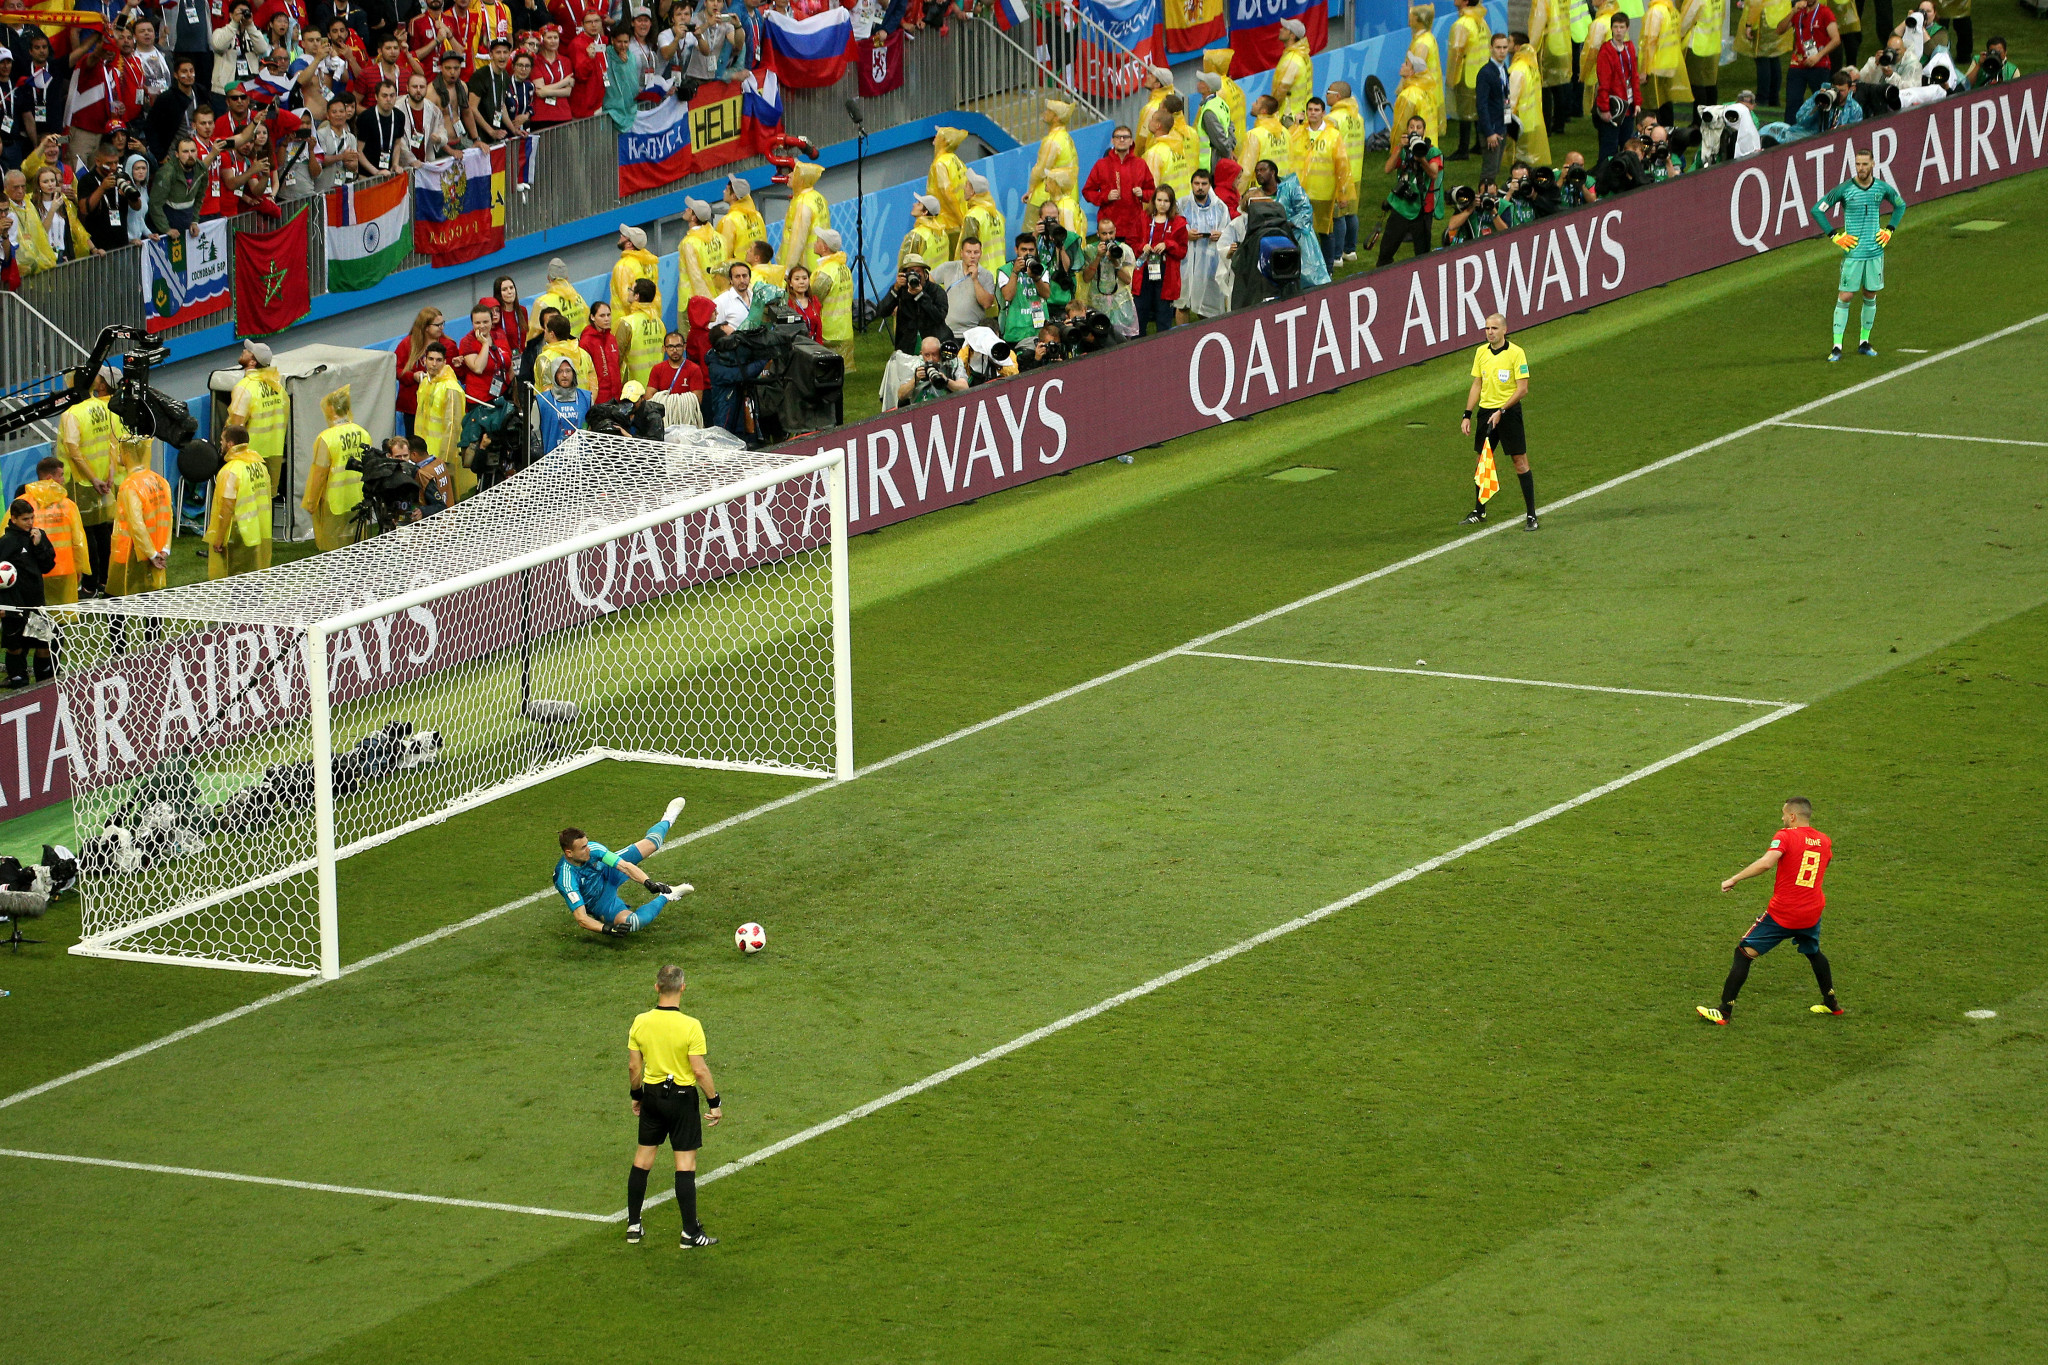 Koke was one of two players to miss penalties in the decisive shoot-out ©Getty Images